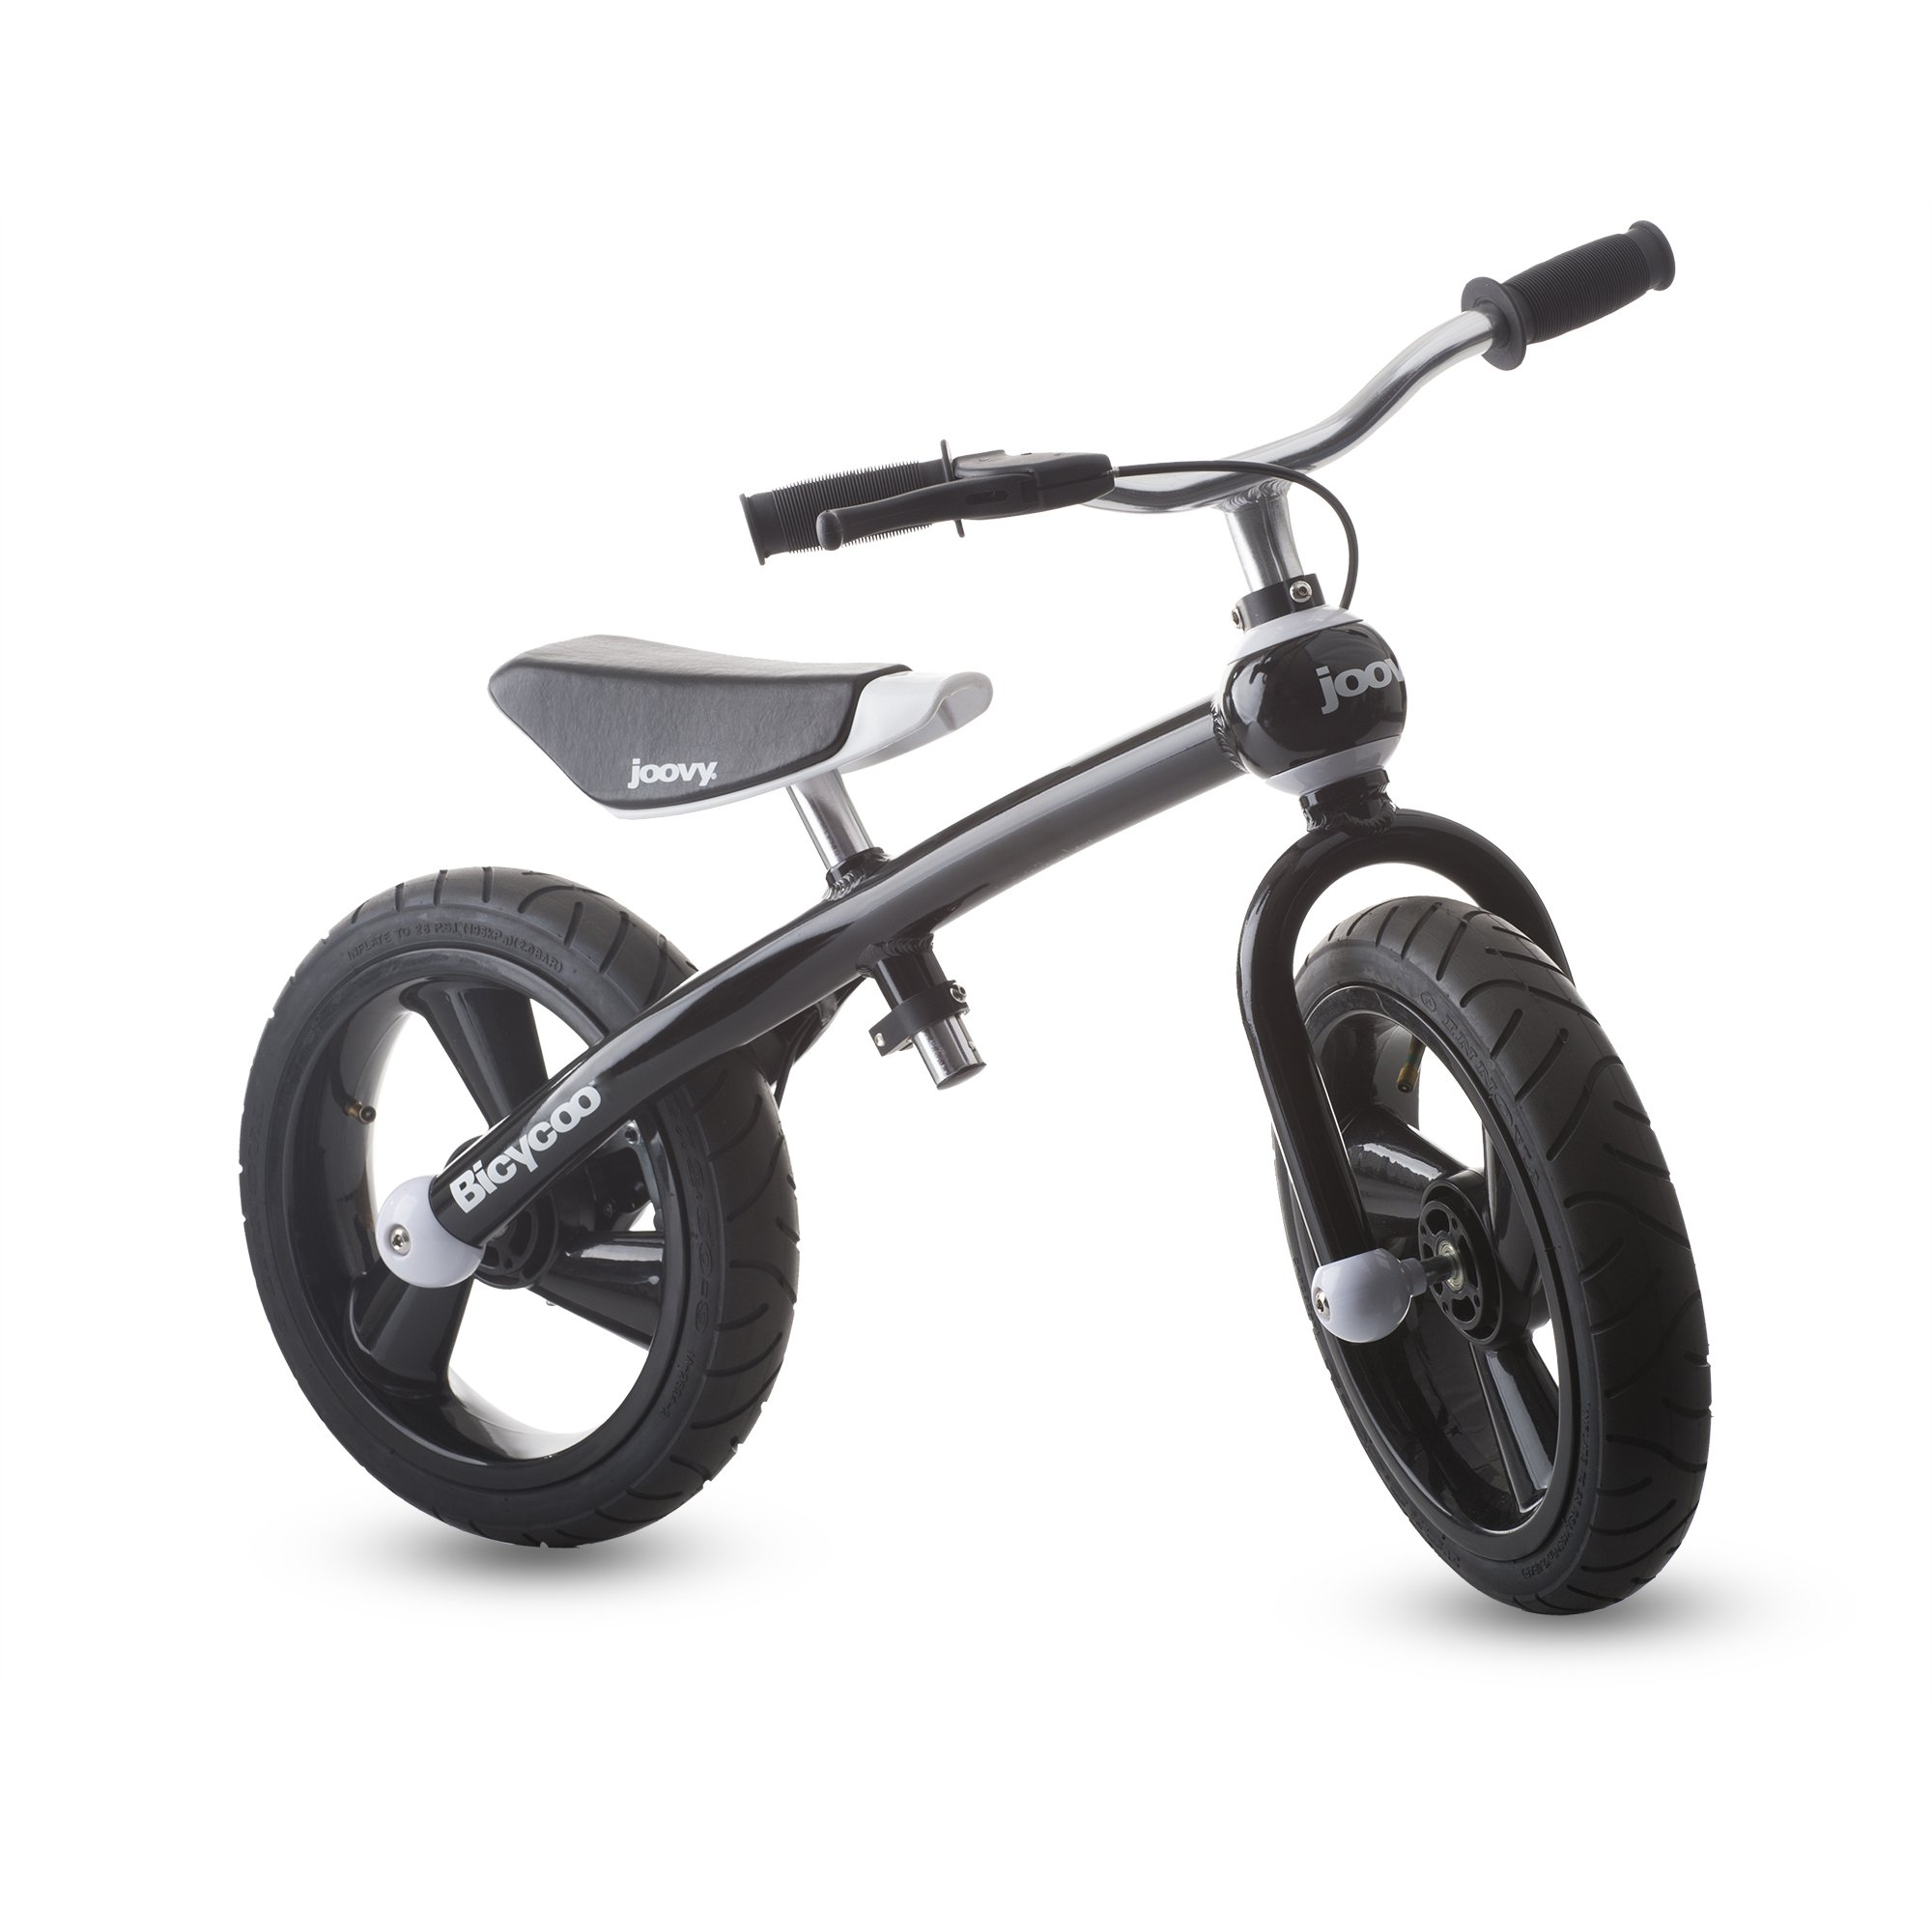 Joovy Bicycoo Balance Bike, Black by Joovy